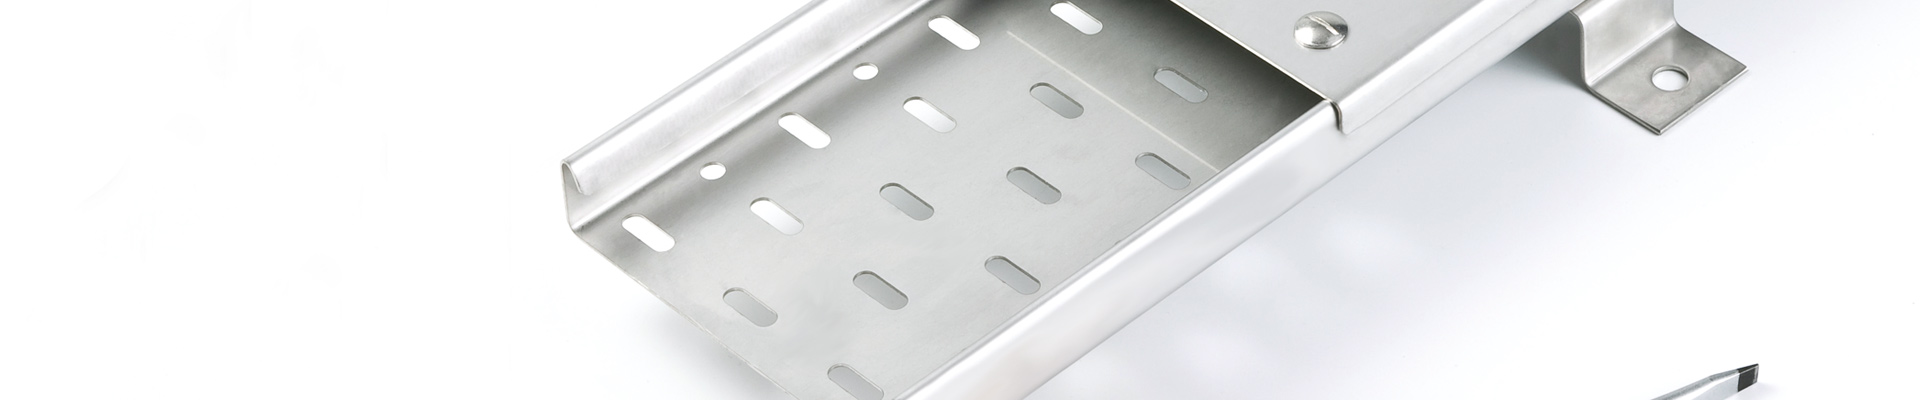 Stainless Steel Medium Duty Return Flange Cable Tray Lengths & Lids